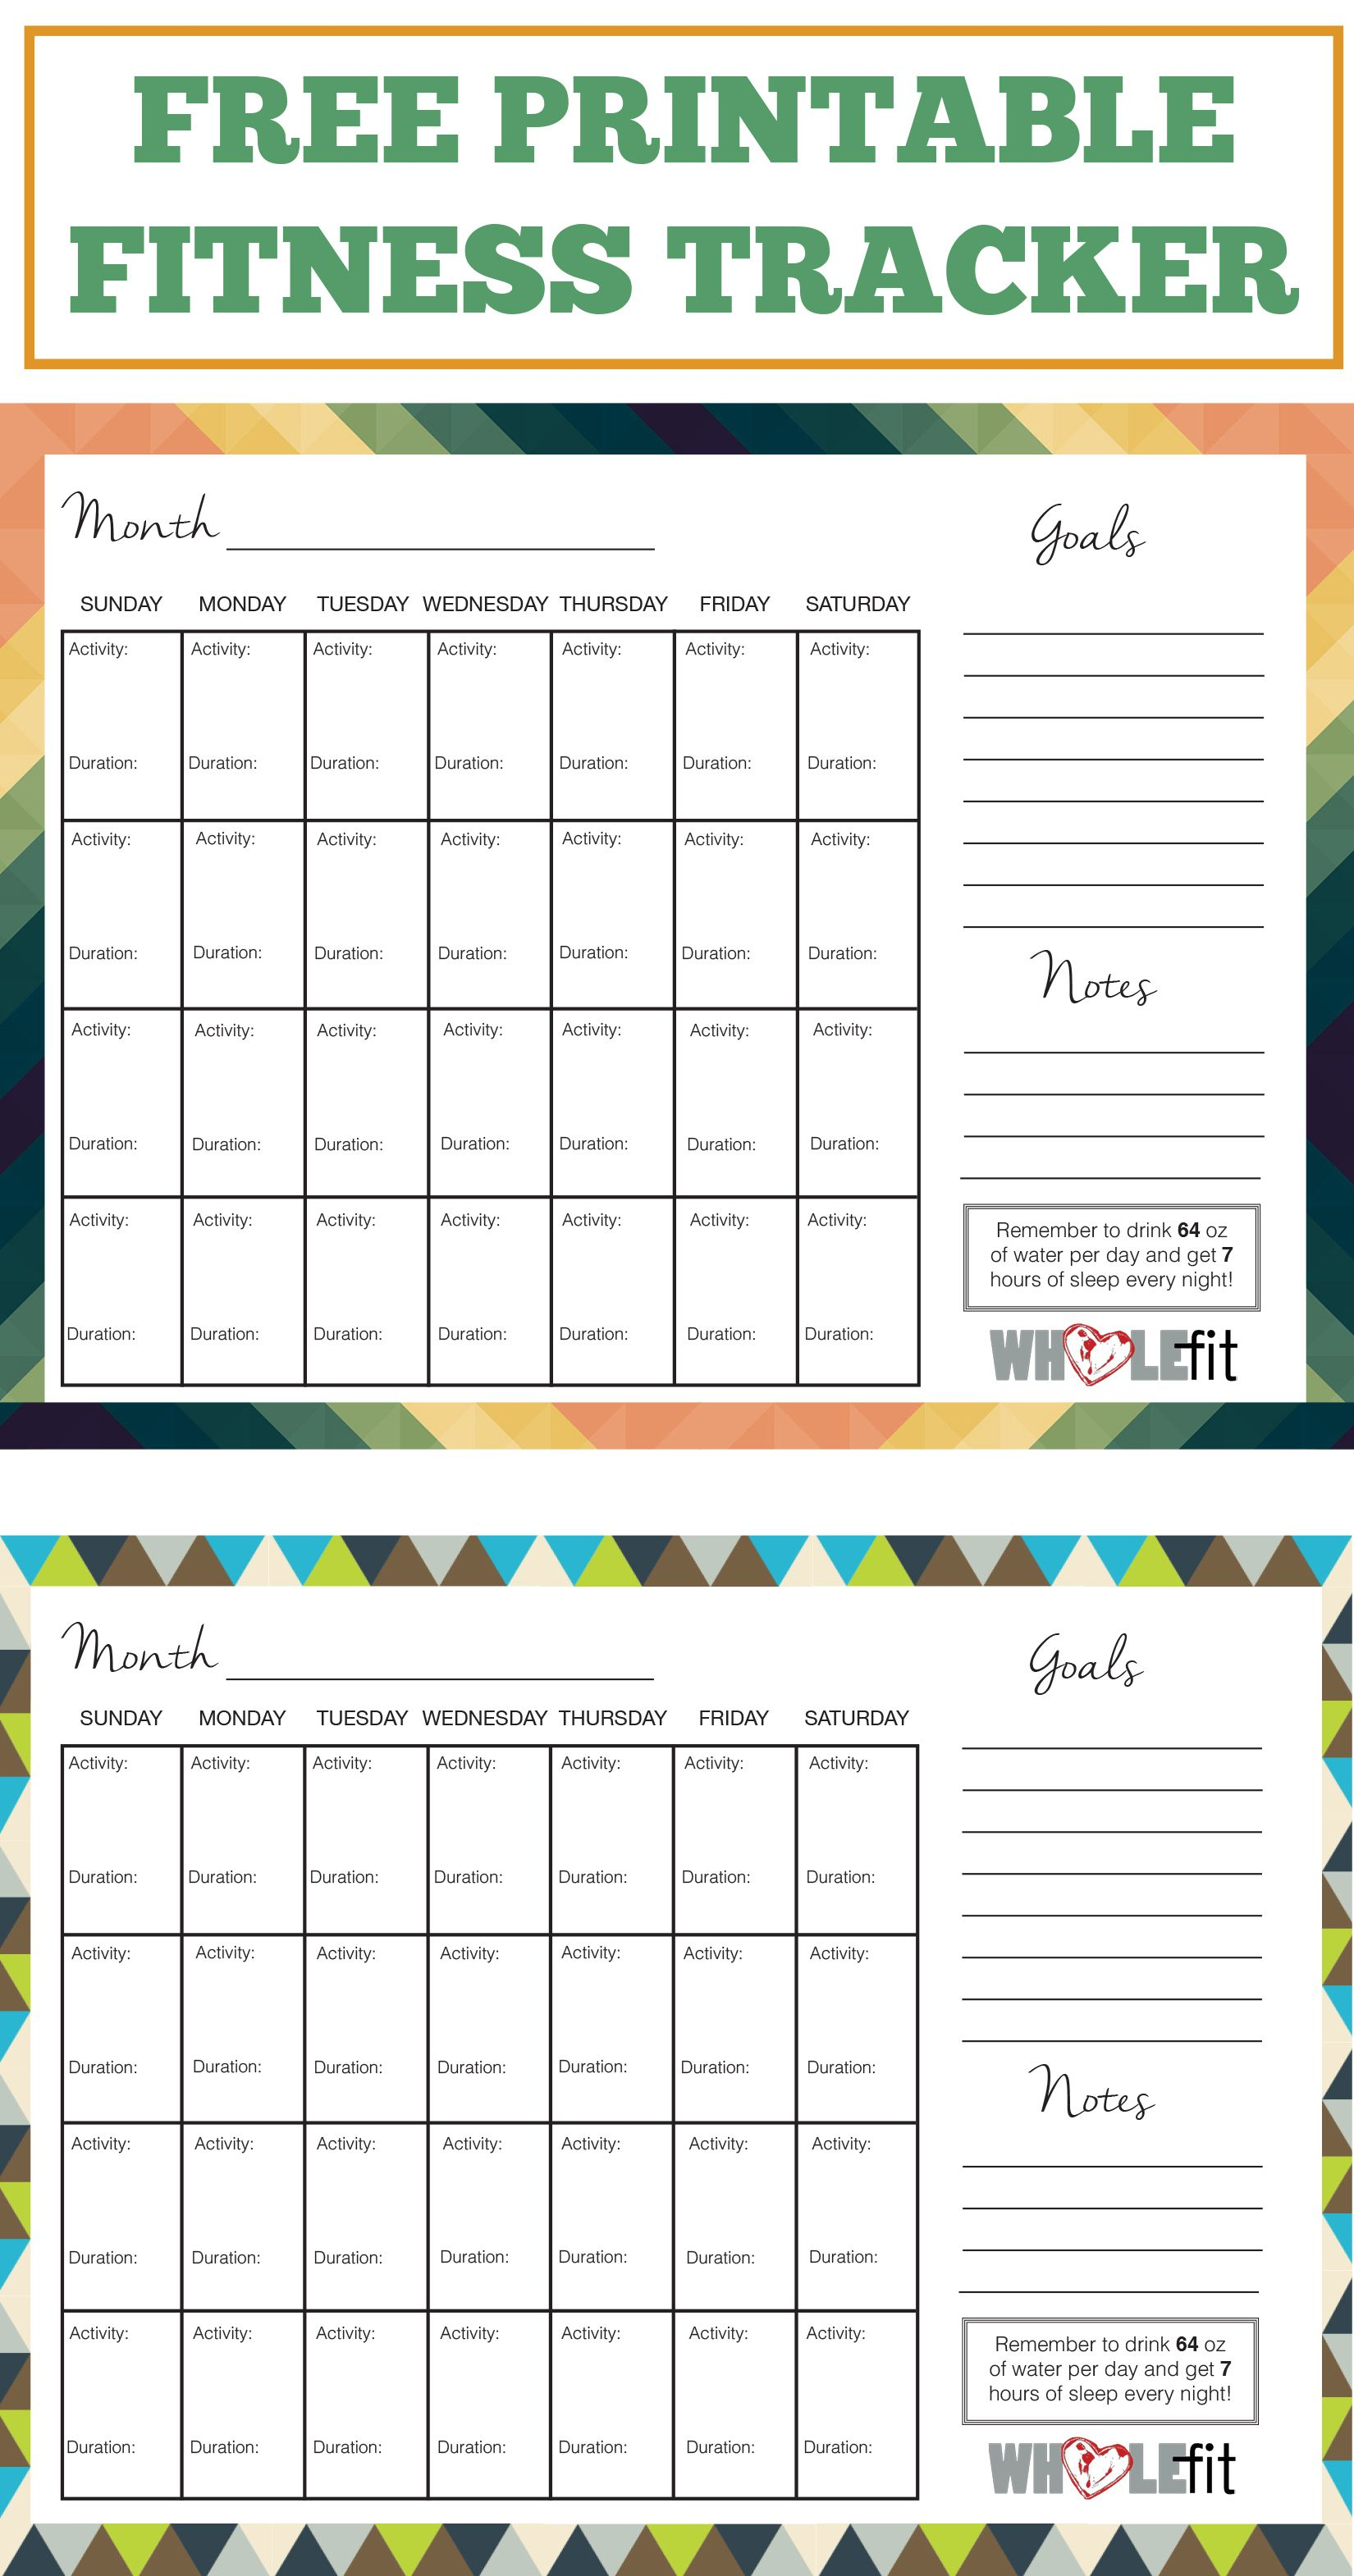 Track Your Progress With These Free Printable Fitness Trackers - Free Printable Fitness Tracker